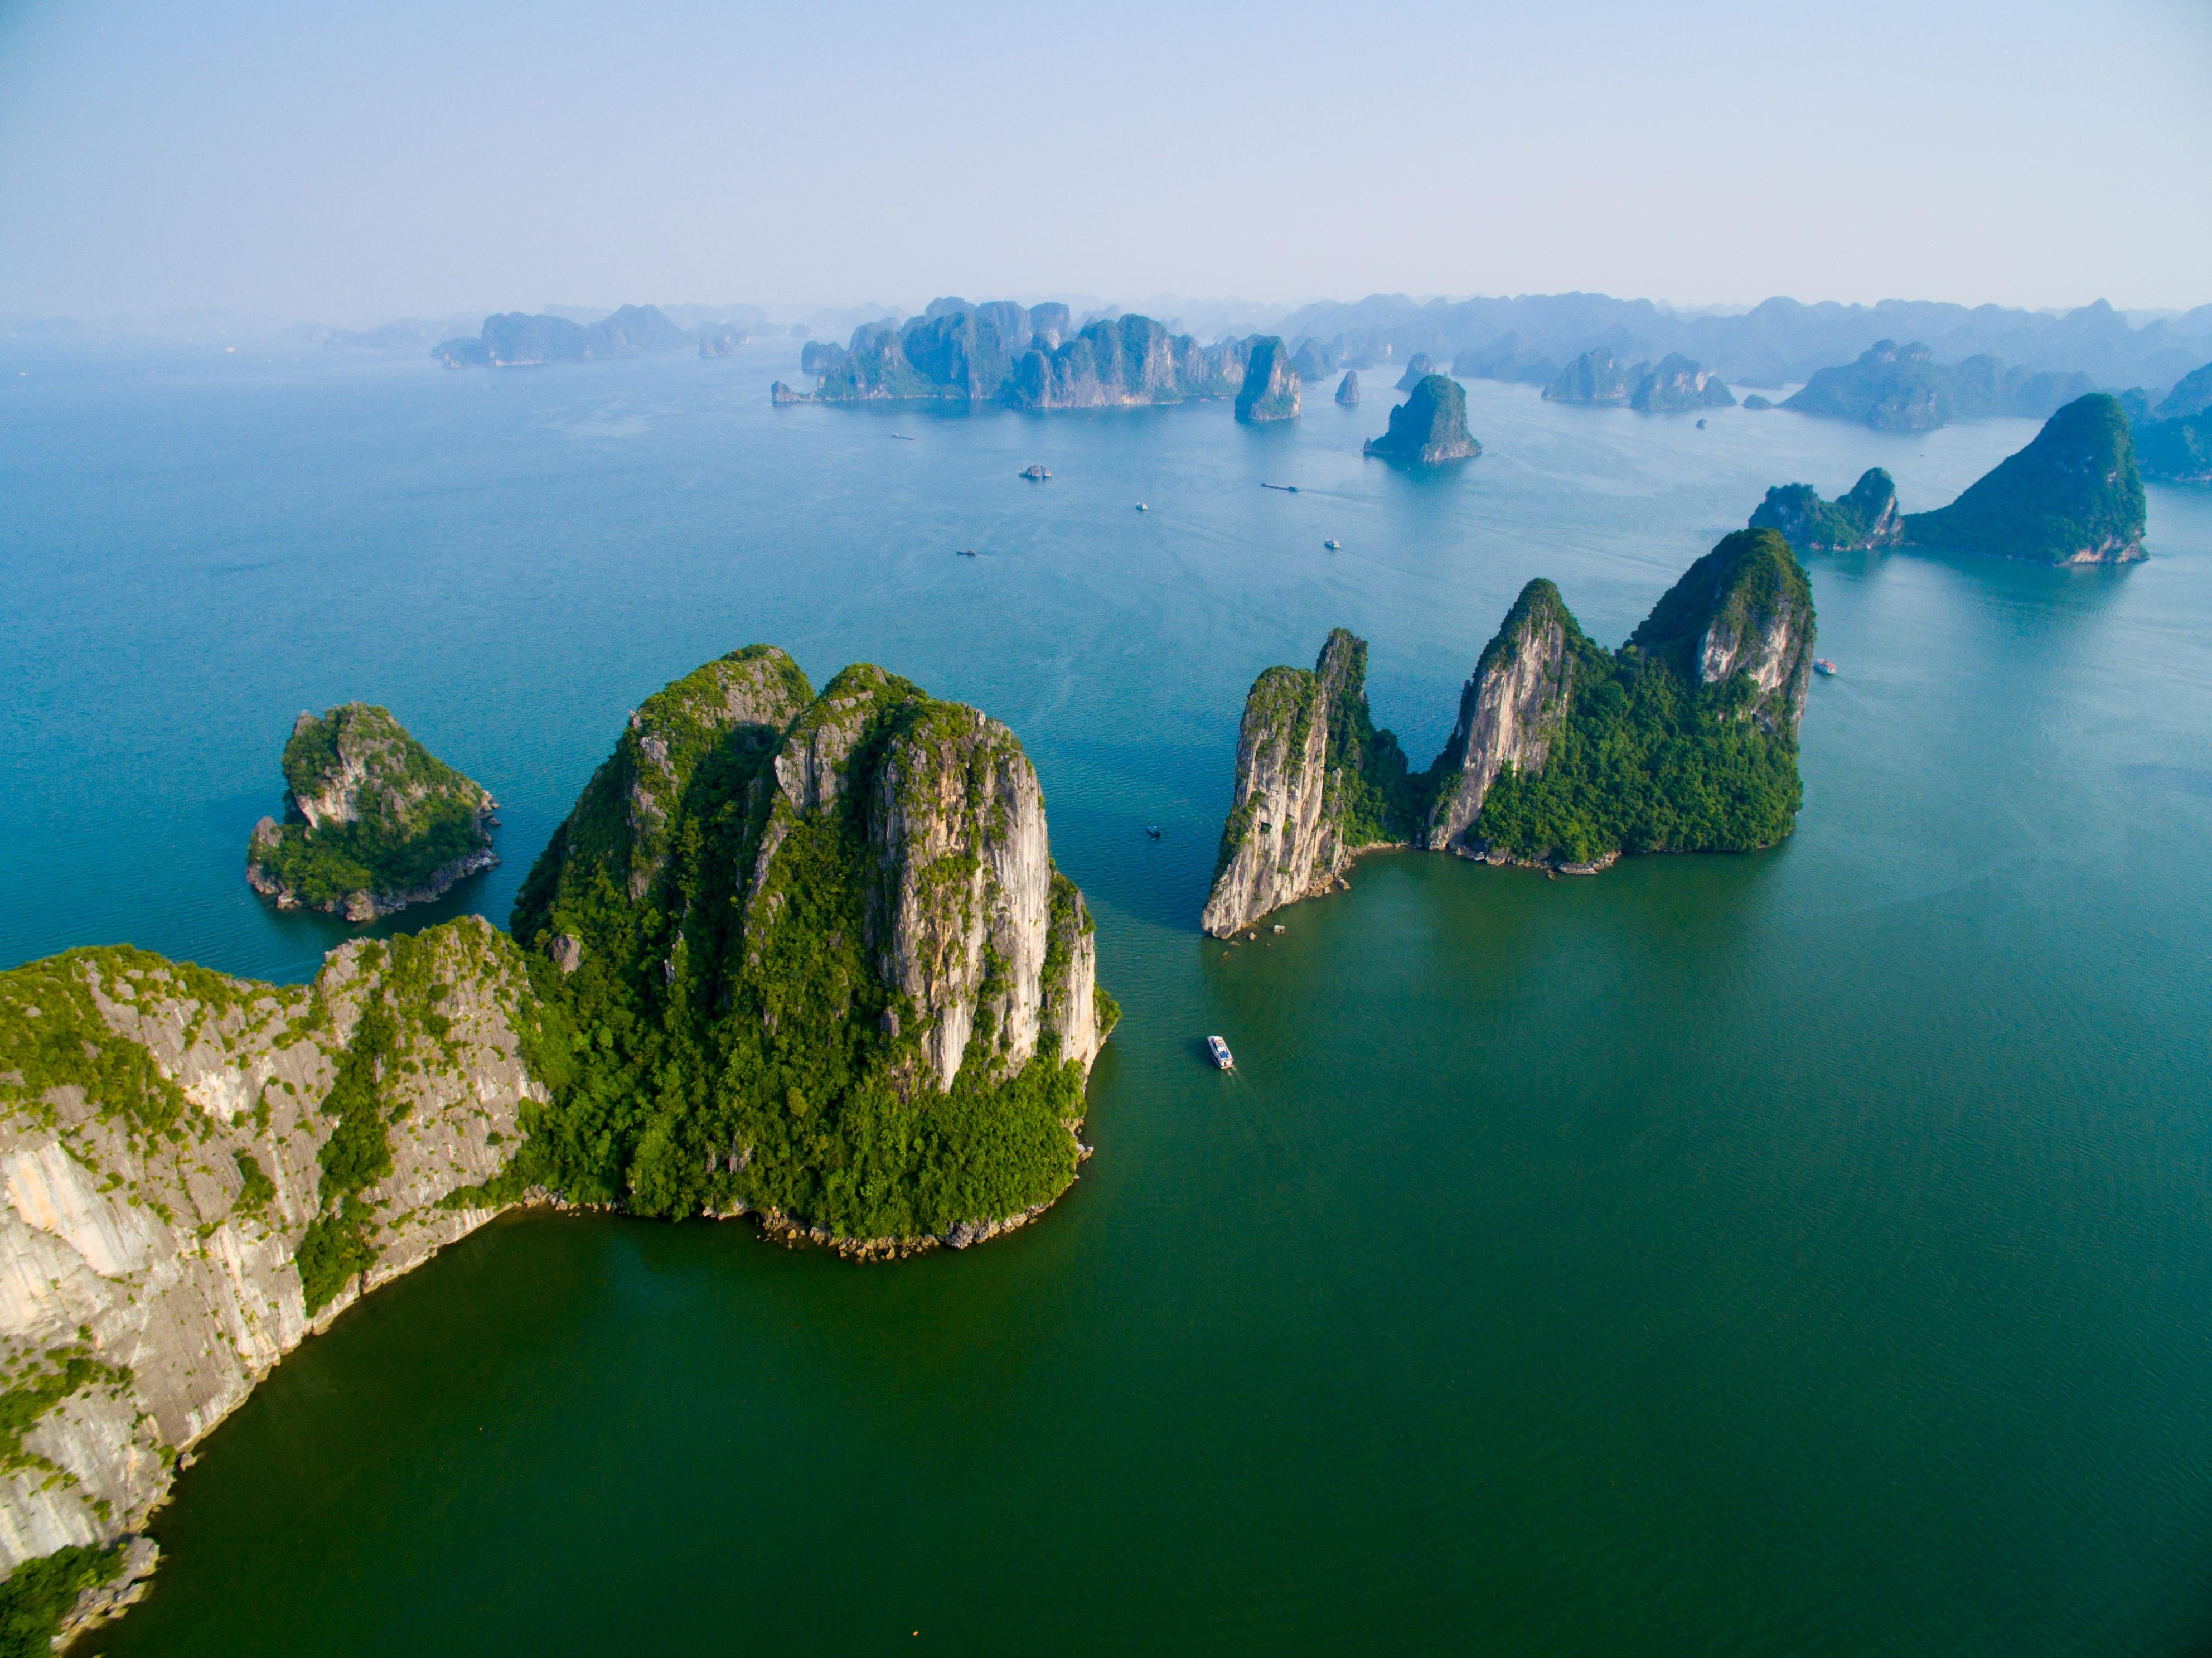 Slide 21 of 51: Ha Long Bay's natural beauty makes itone of Vietnam's number one tourist sites. The bay is alsoaUNESCO World Heritage site.The best way to see Ha Long's awe-inspiring limestone towers is by boat. In fact, many tourists stay overnight on a boat in the bay.